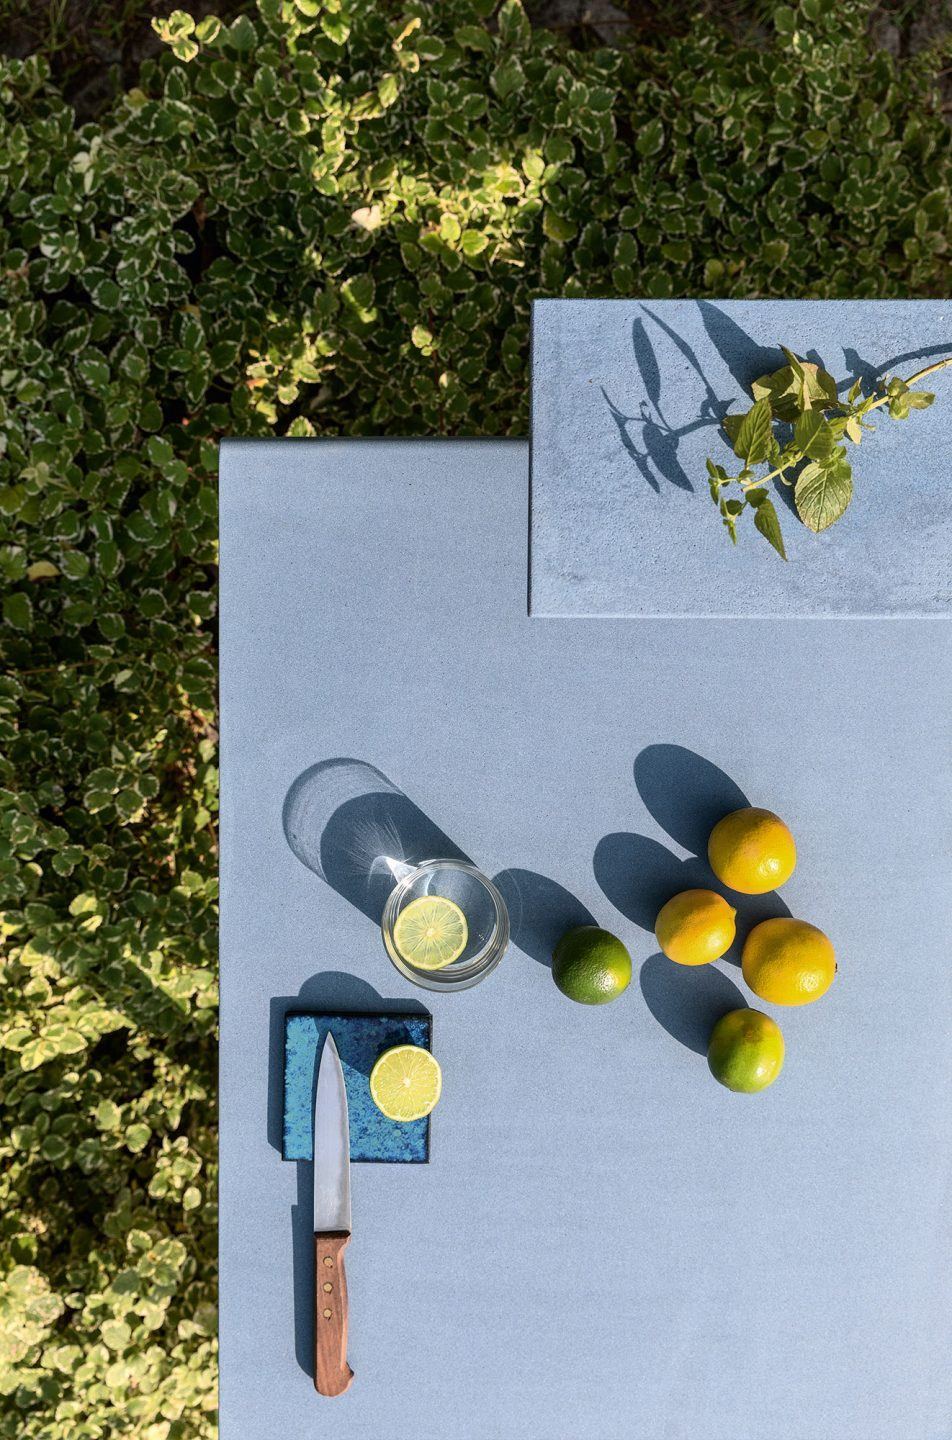 Libera | <strong>LIBERA</strong> | manufacturer <strong>Elmar</strong> | project <strong>Marco Merendi & Diego Vencato</strong> | ph © <strong>Claudio Tajoli</strong>